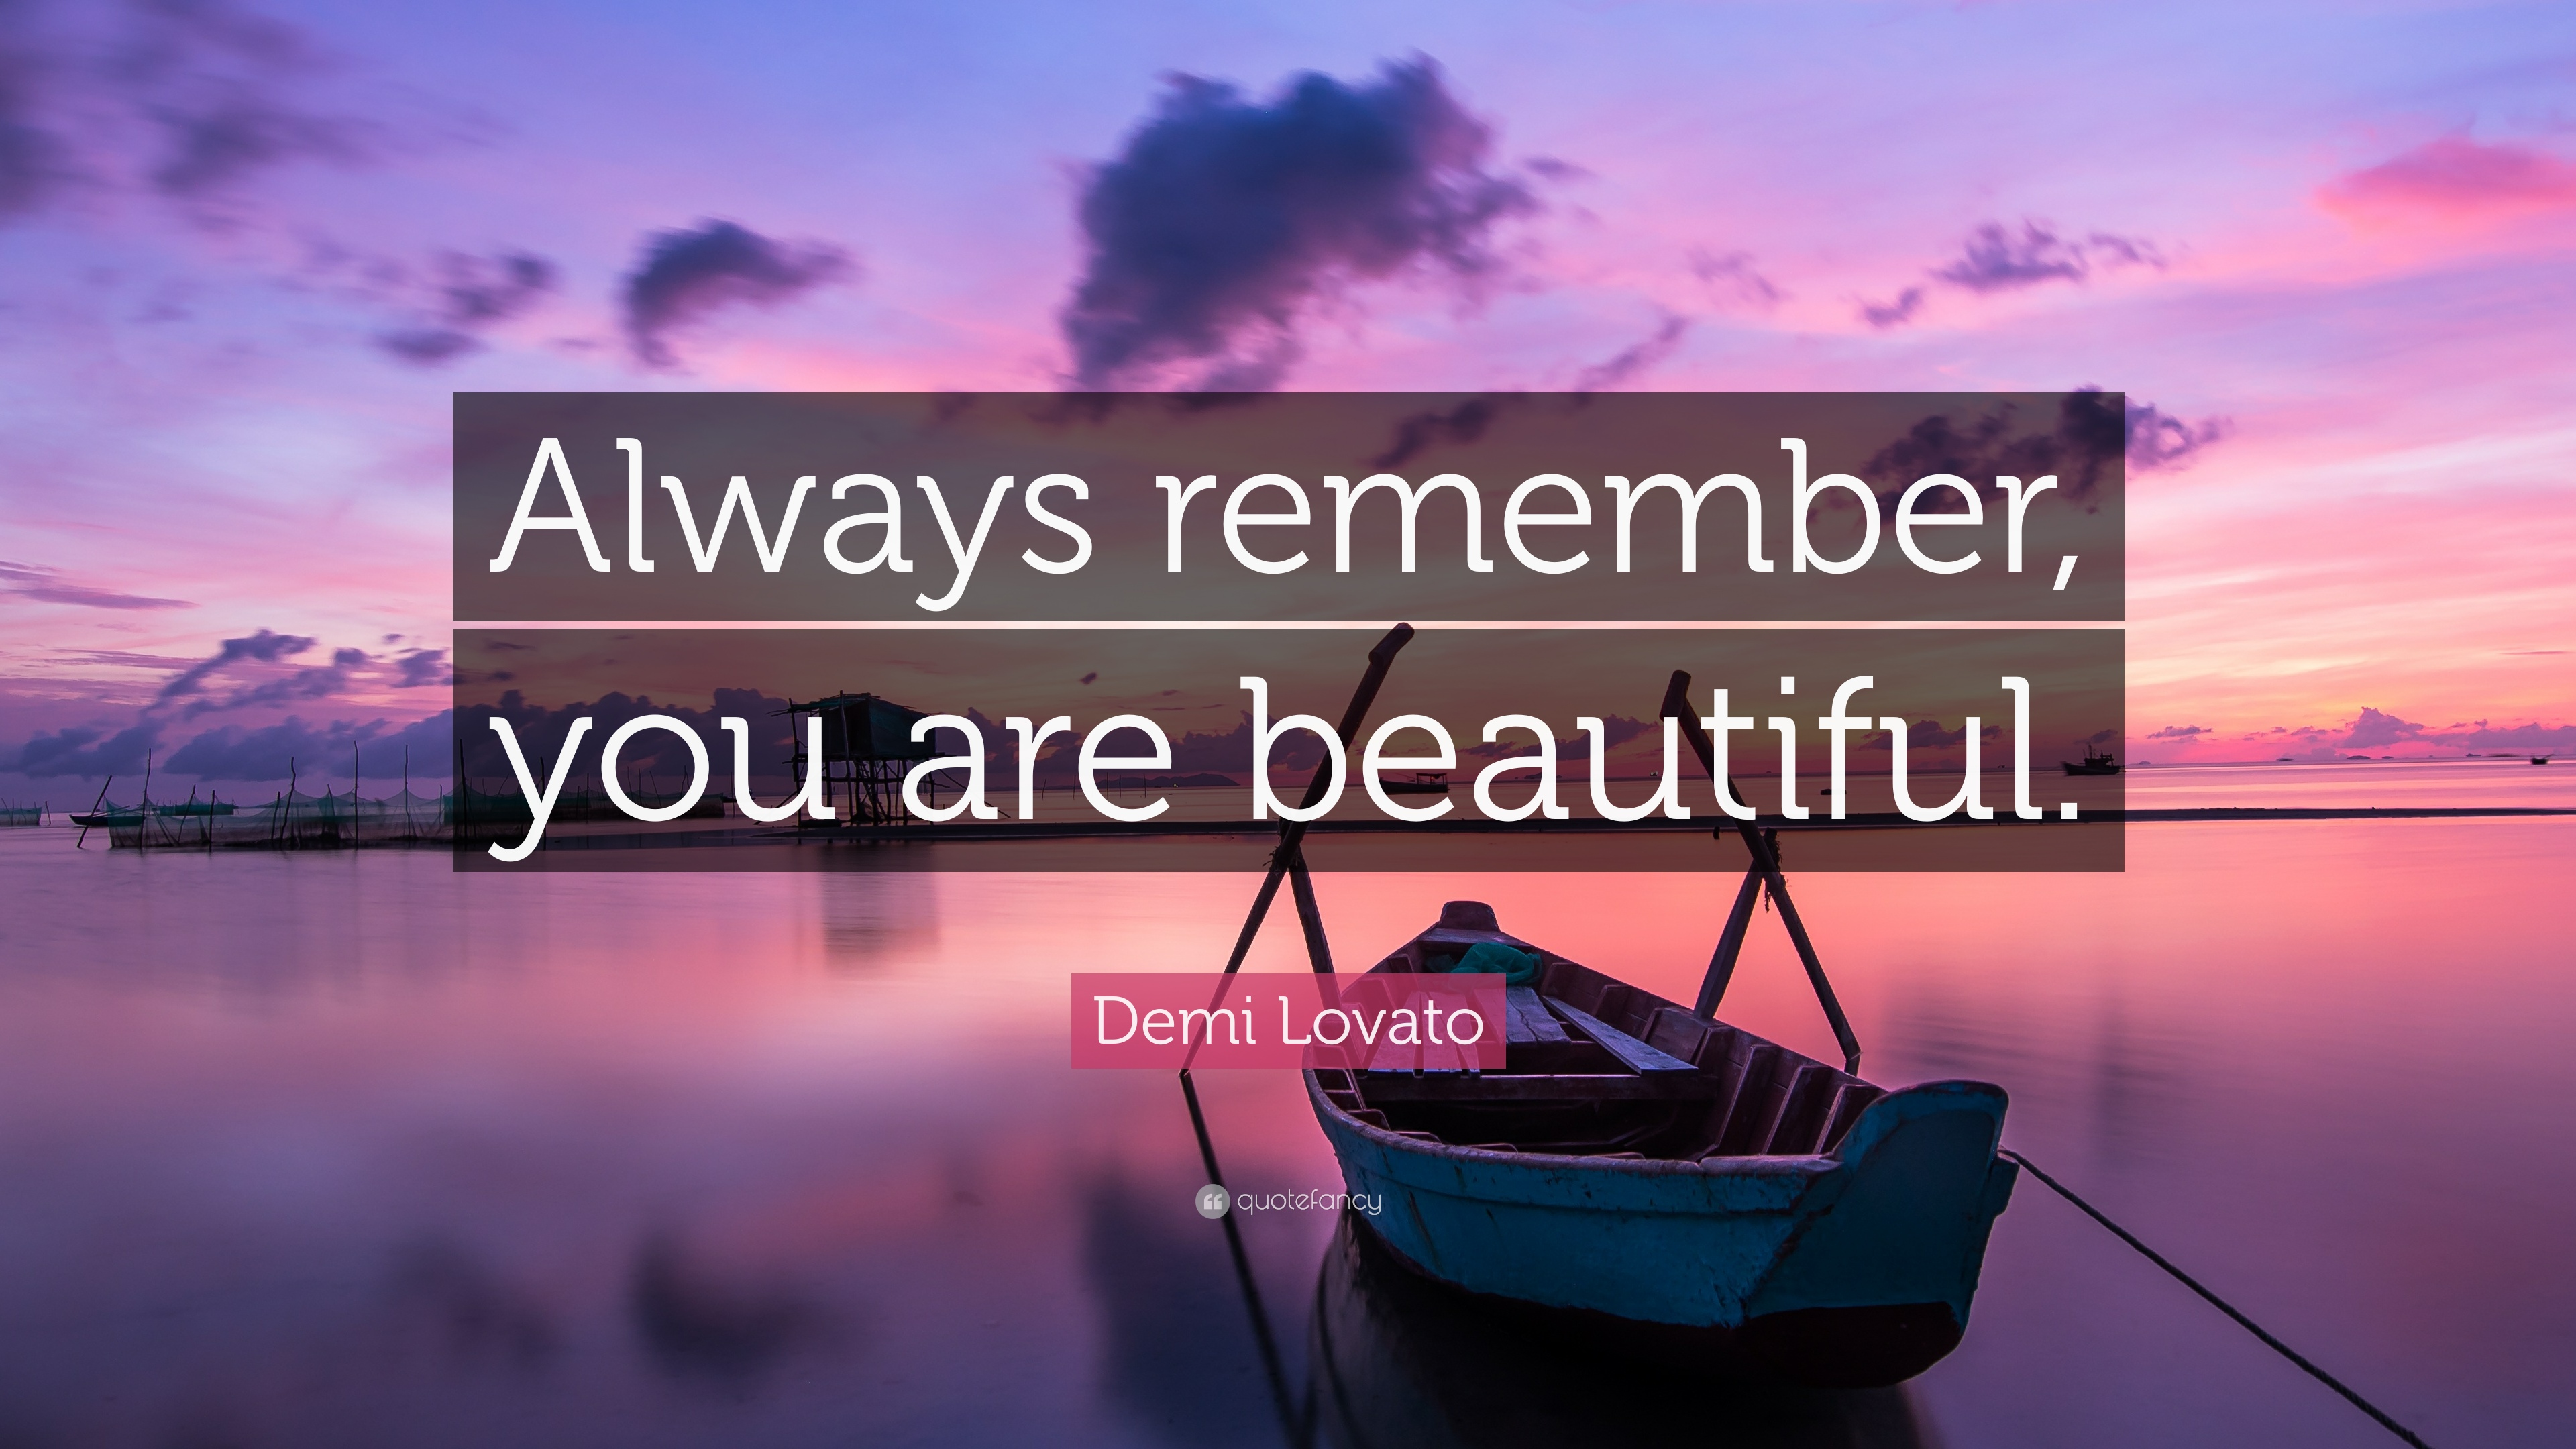 pretty quotes on Tumblr |You Are Beautiful Quotes Tumblr